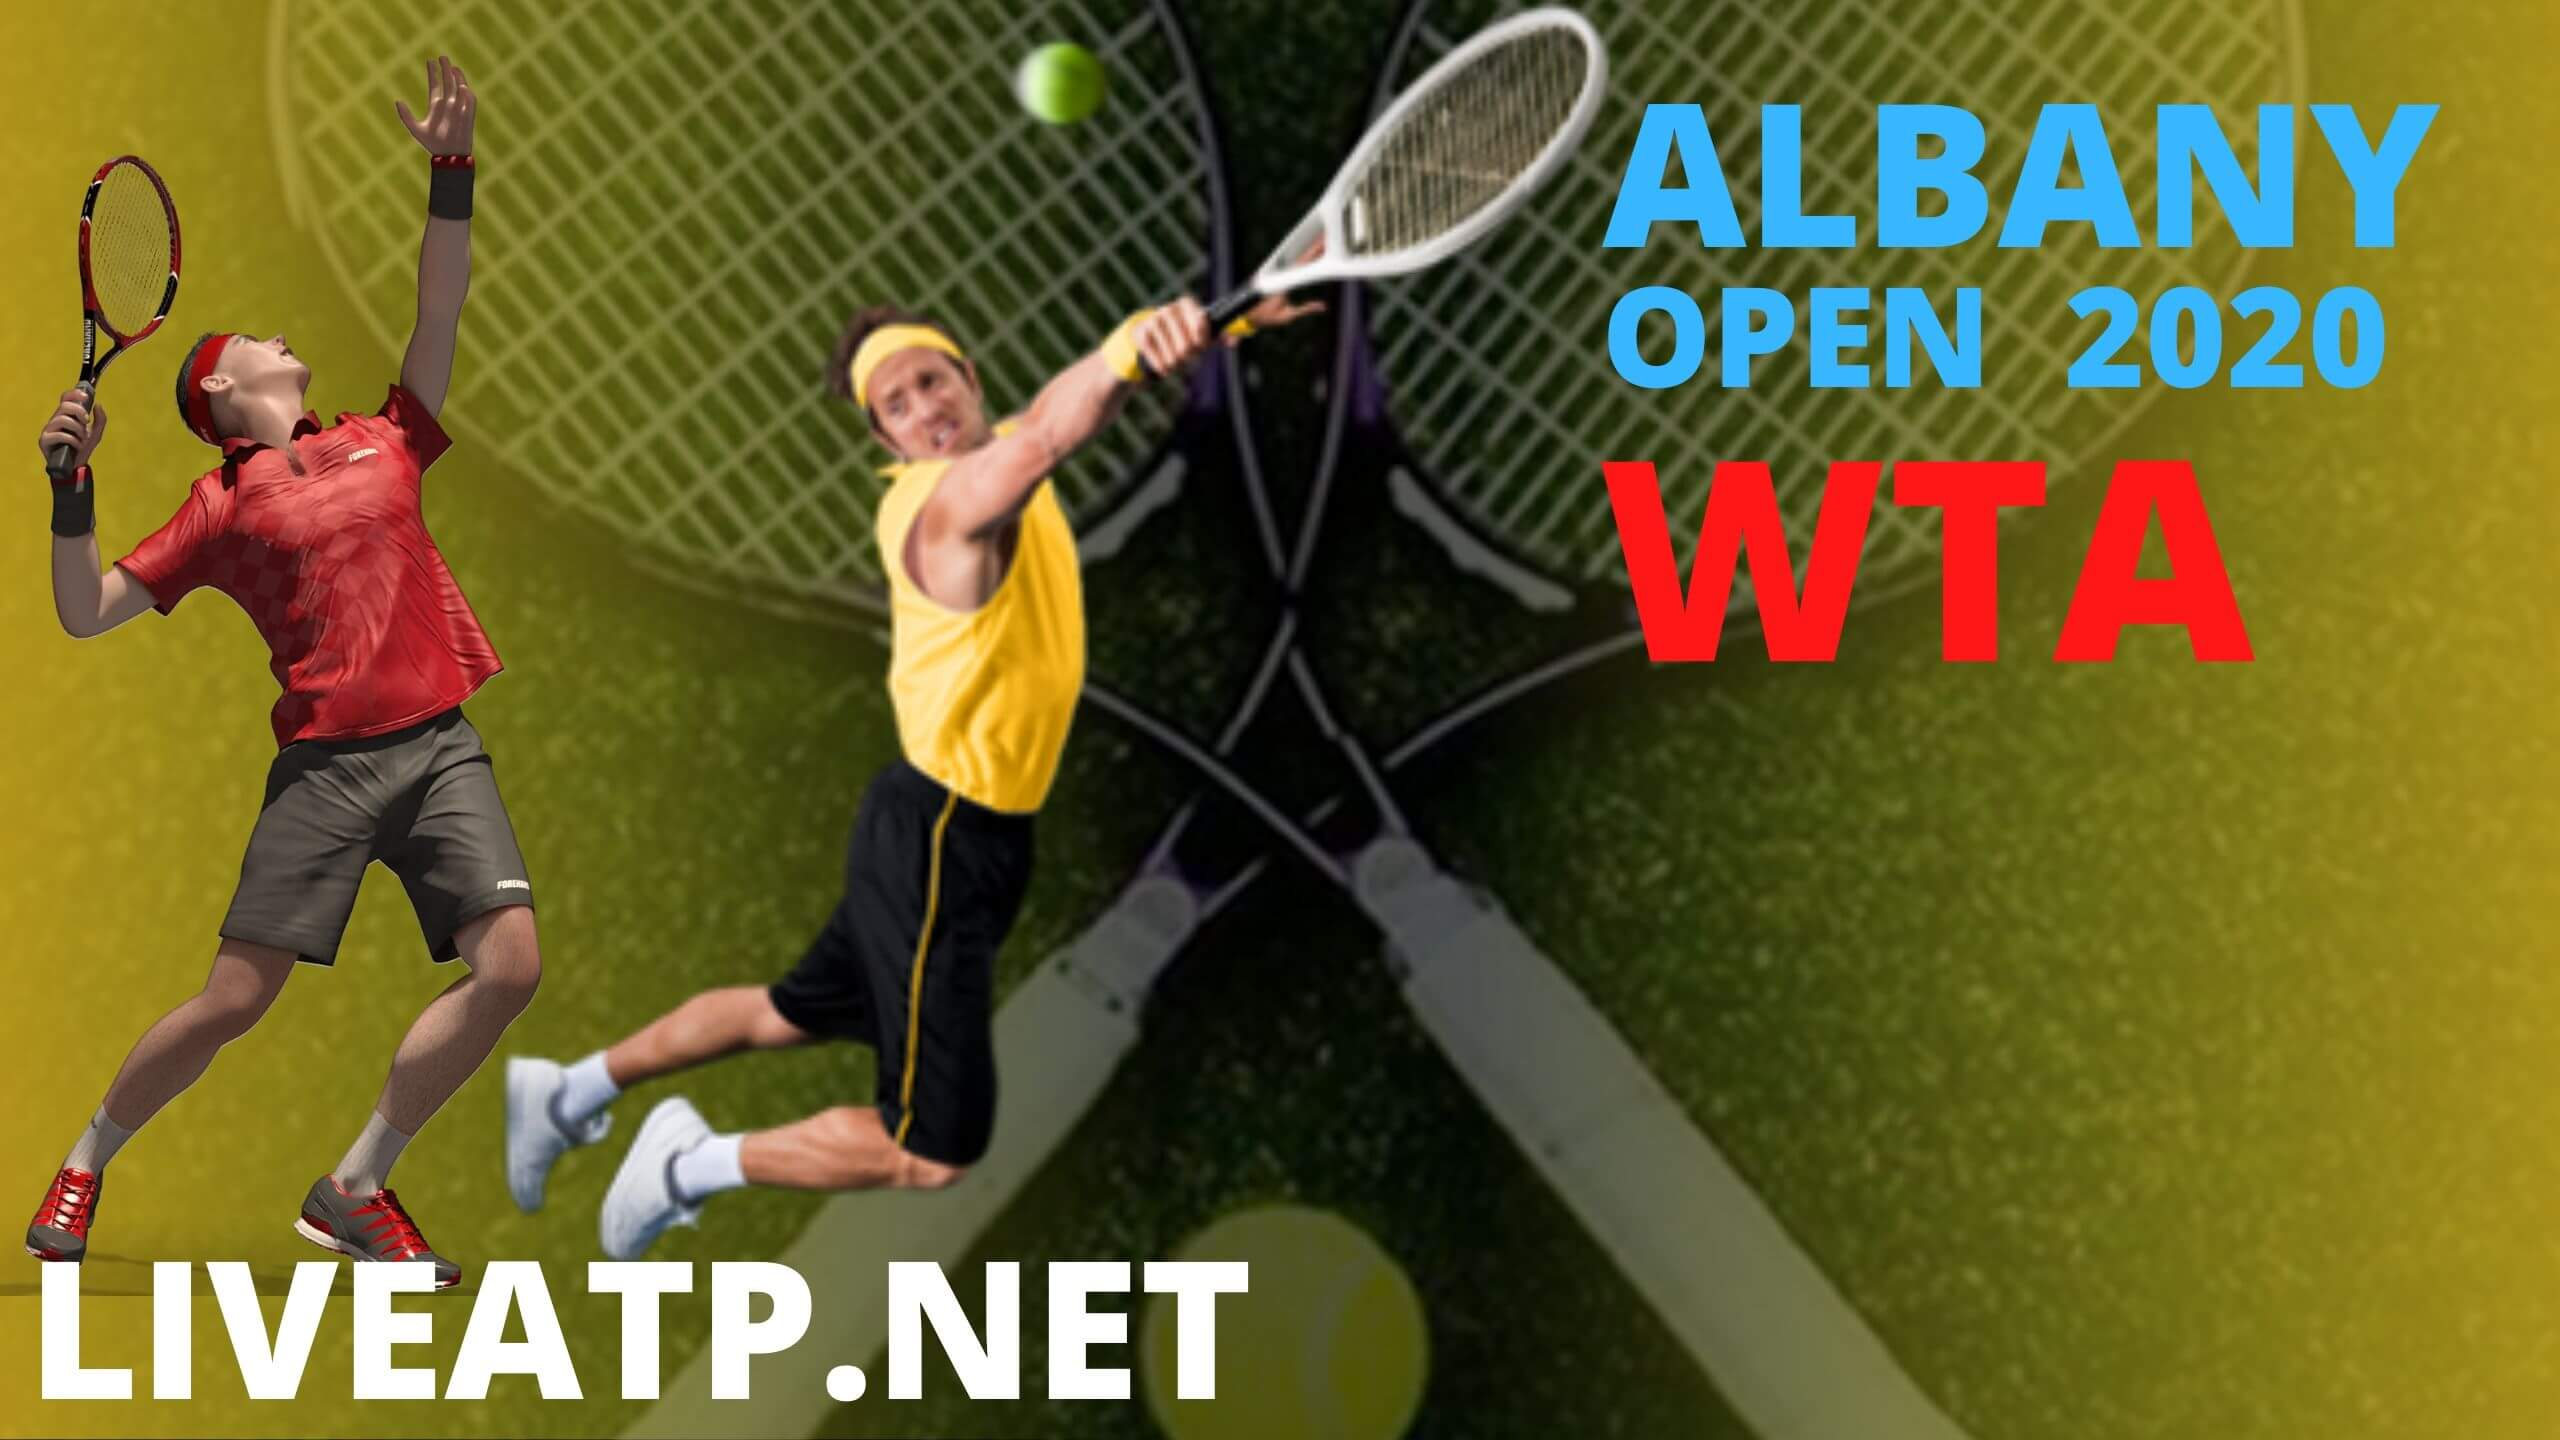 Albany Open Live Stream 2020 | Day 1